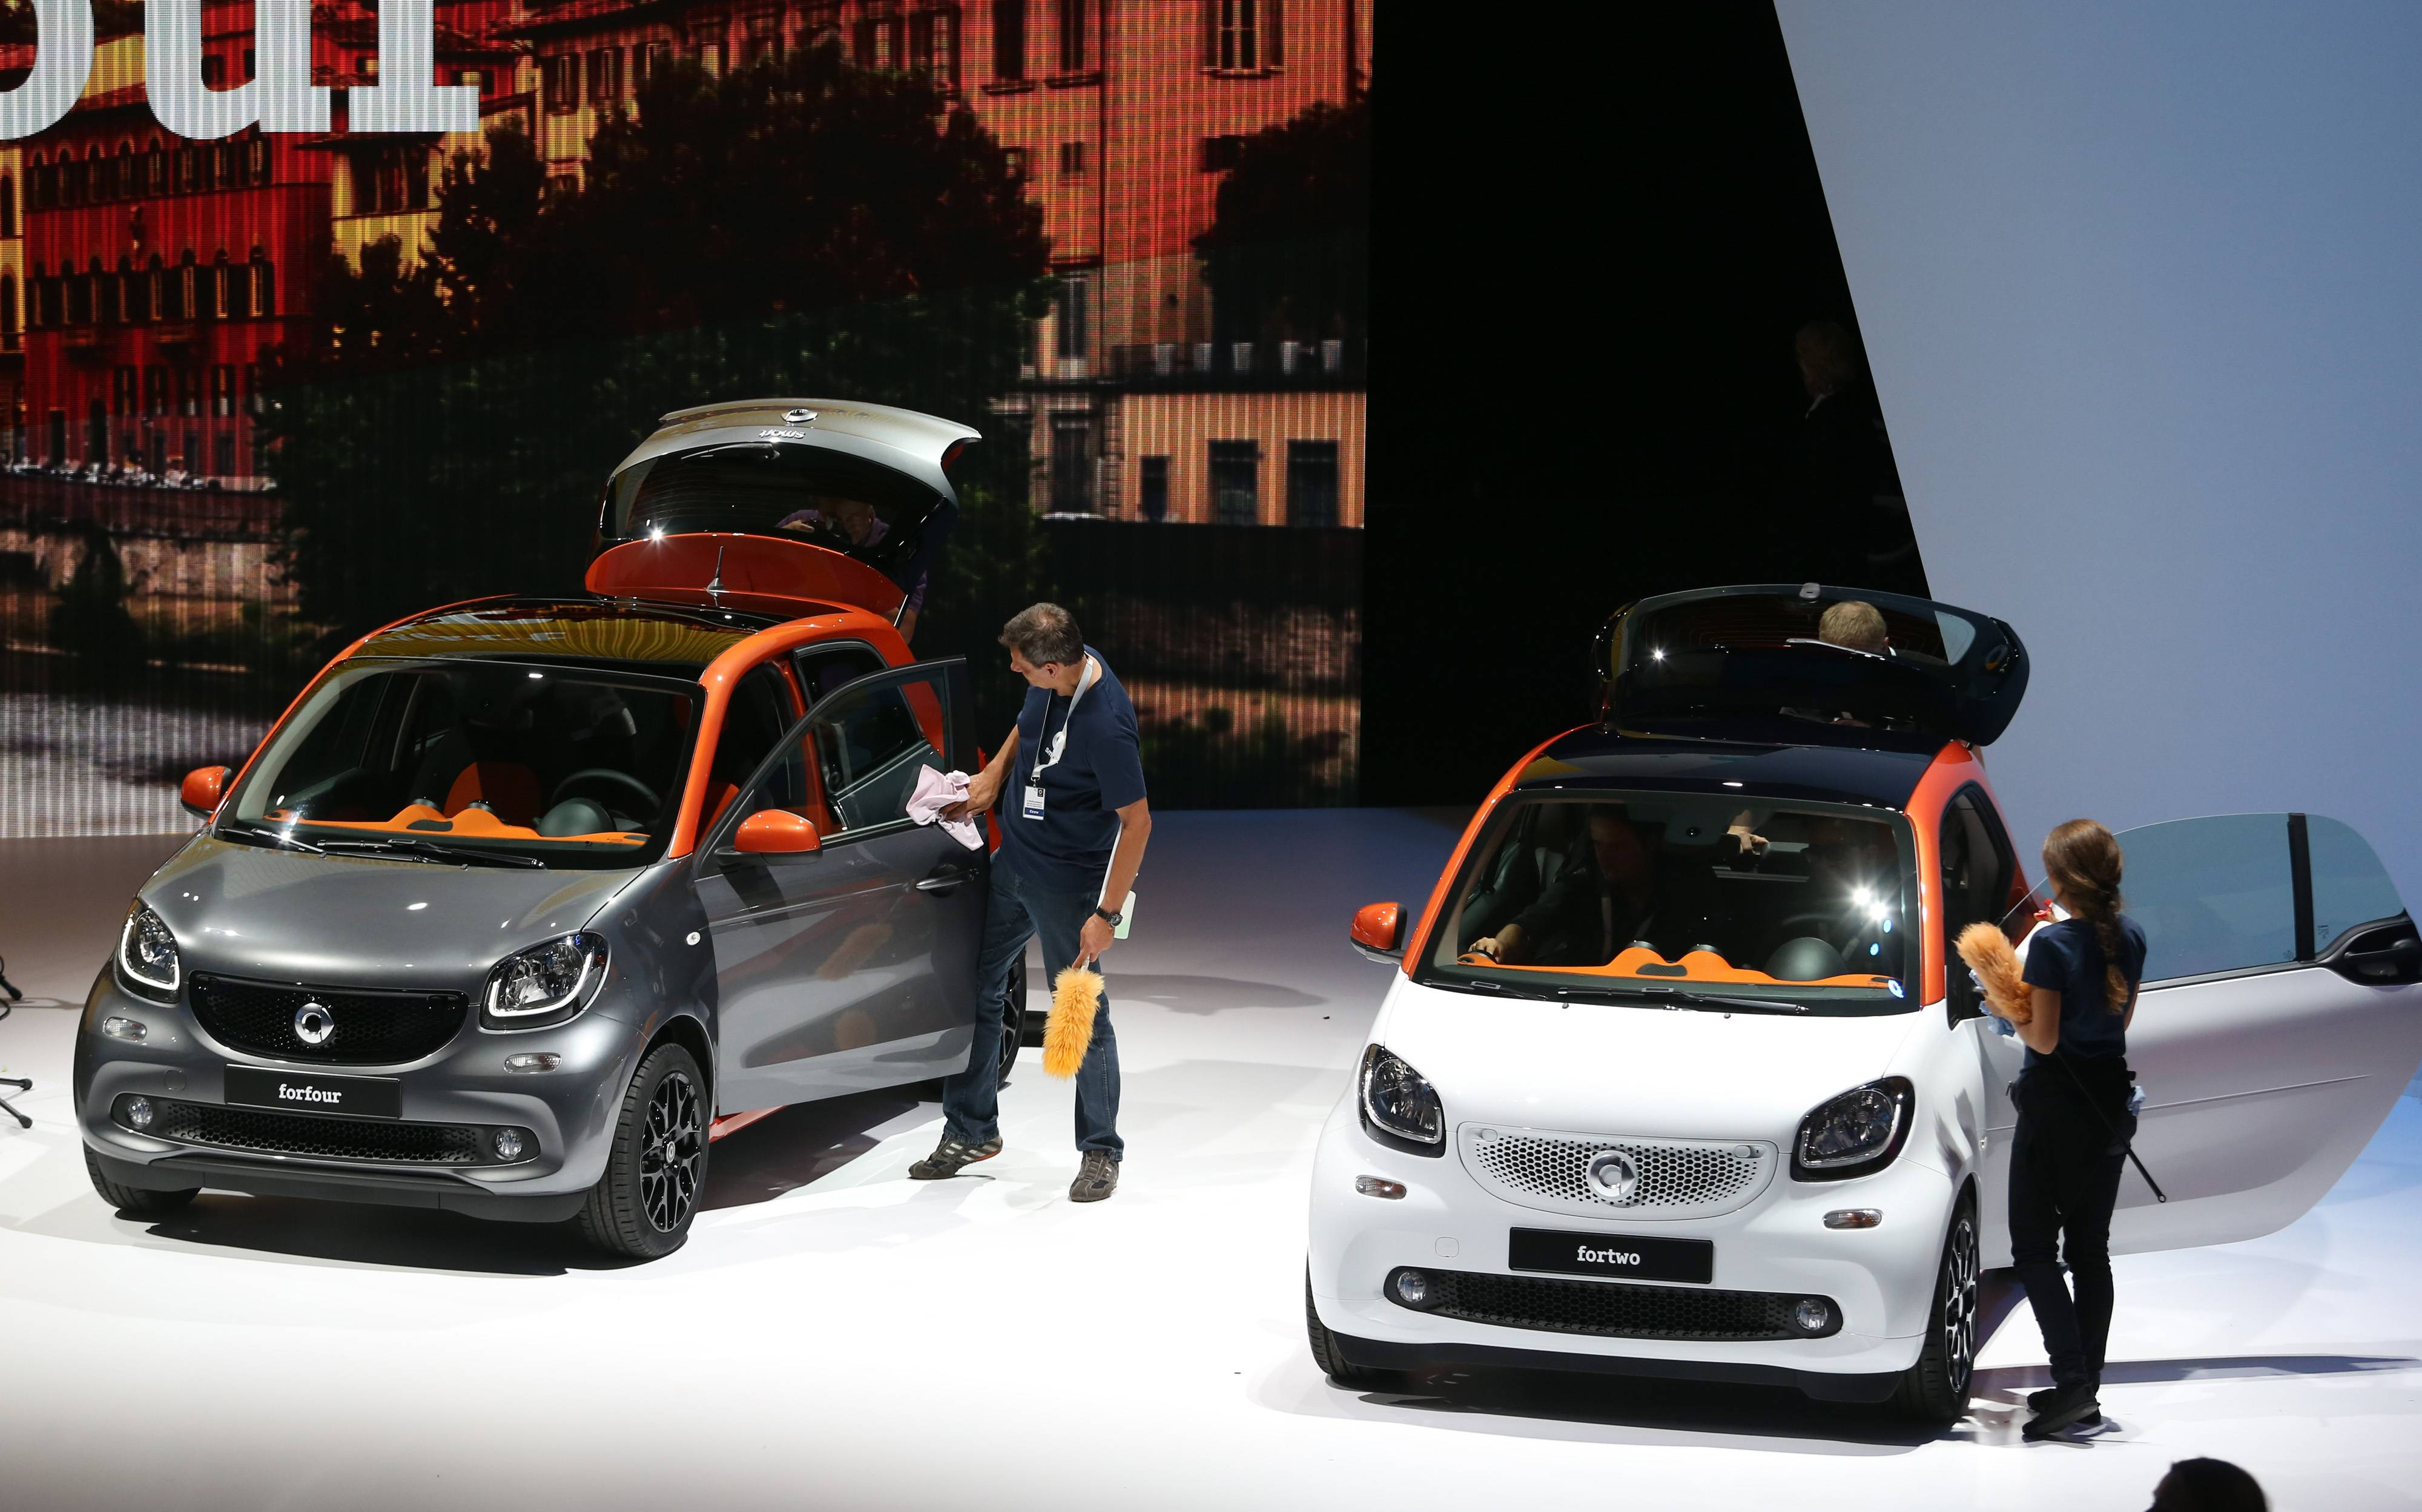 Employees clean a Smart ForTwo and a Smart ForFour electric automobile, manufactured by Daimler AG, at the car's world premiere in Berlin, Germany. Daimler's Smart brand unveiled a new version of its two-seat city car and revived a four-seat model as the sister division of luxury-vehicle maker Mercedes-Benz resumes a push to attract urban buyers.